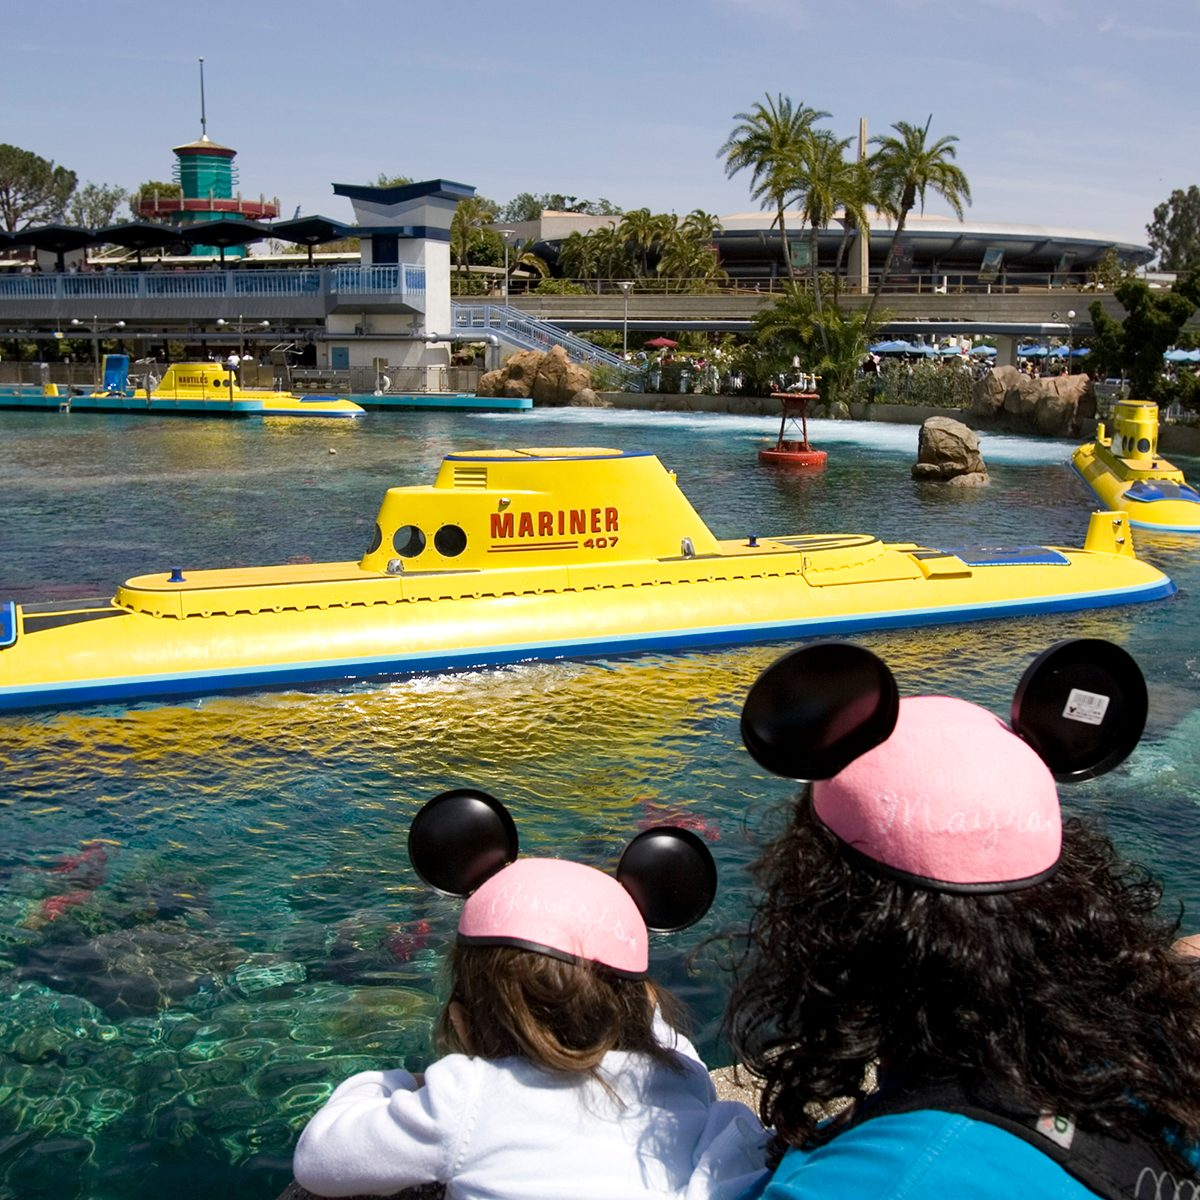 (Anaheim) – After being closed for nine years, the Disneyland submarines finally get a return voyage. With a new coating of exterior paint the attraction is now known at the Finding Nemo Submarine Voyage. The submarines are also environmentally friendly with new electric motors, replacing the old diesel engines. The view of the submarine lagoon you see the submarine port and the Monorail platform PHOTOGRAPHED TUESDAY JUNE 5, 2007 (Photo by Don Kelsen/Los Angeles Times via Getty Images)